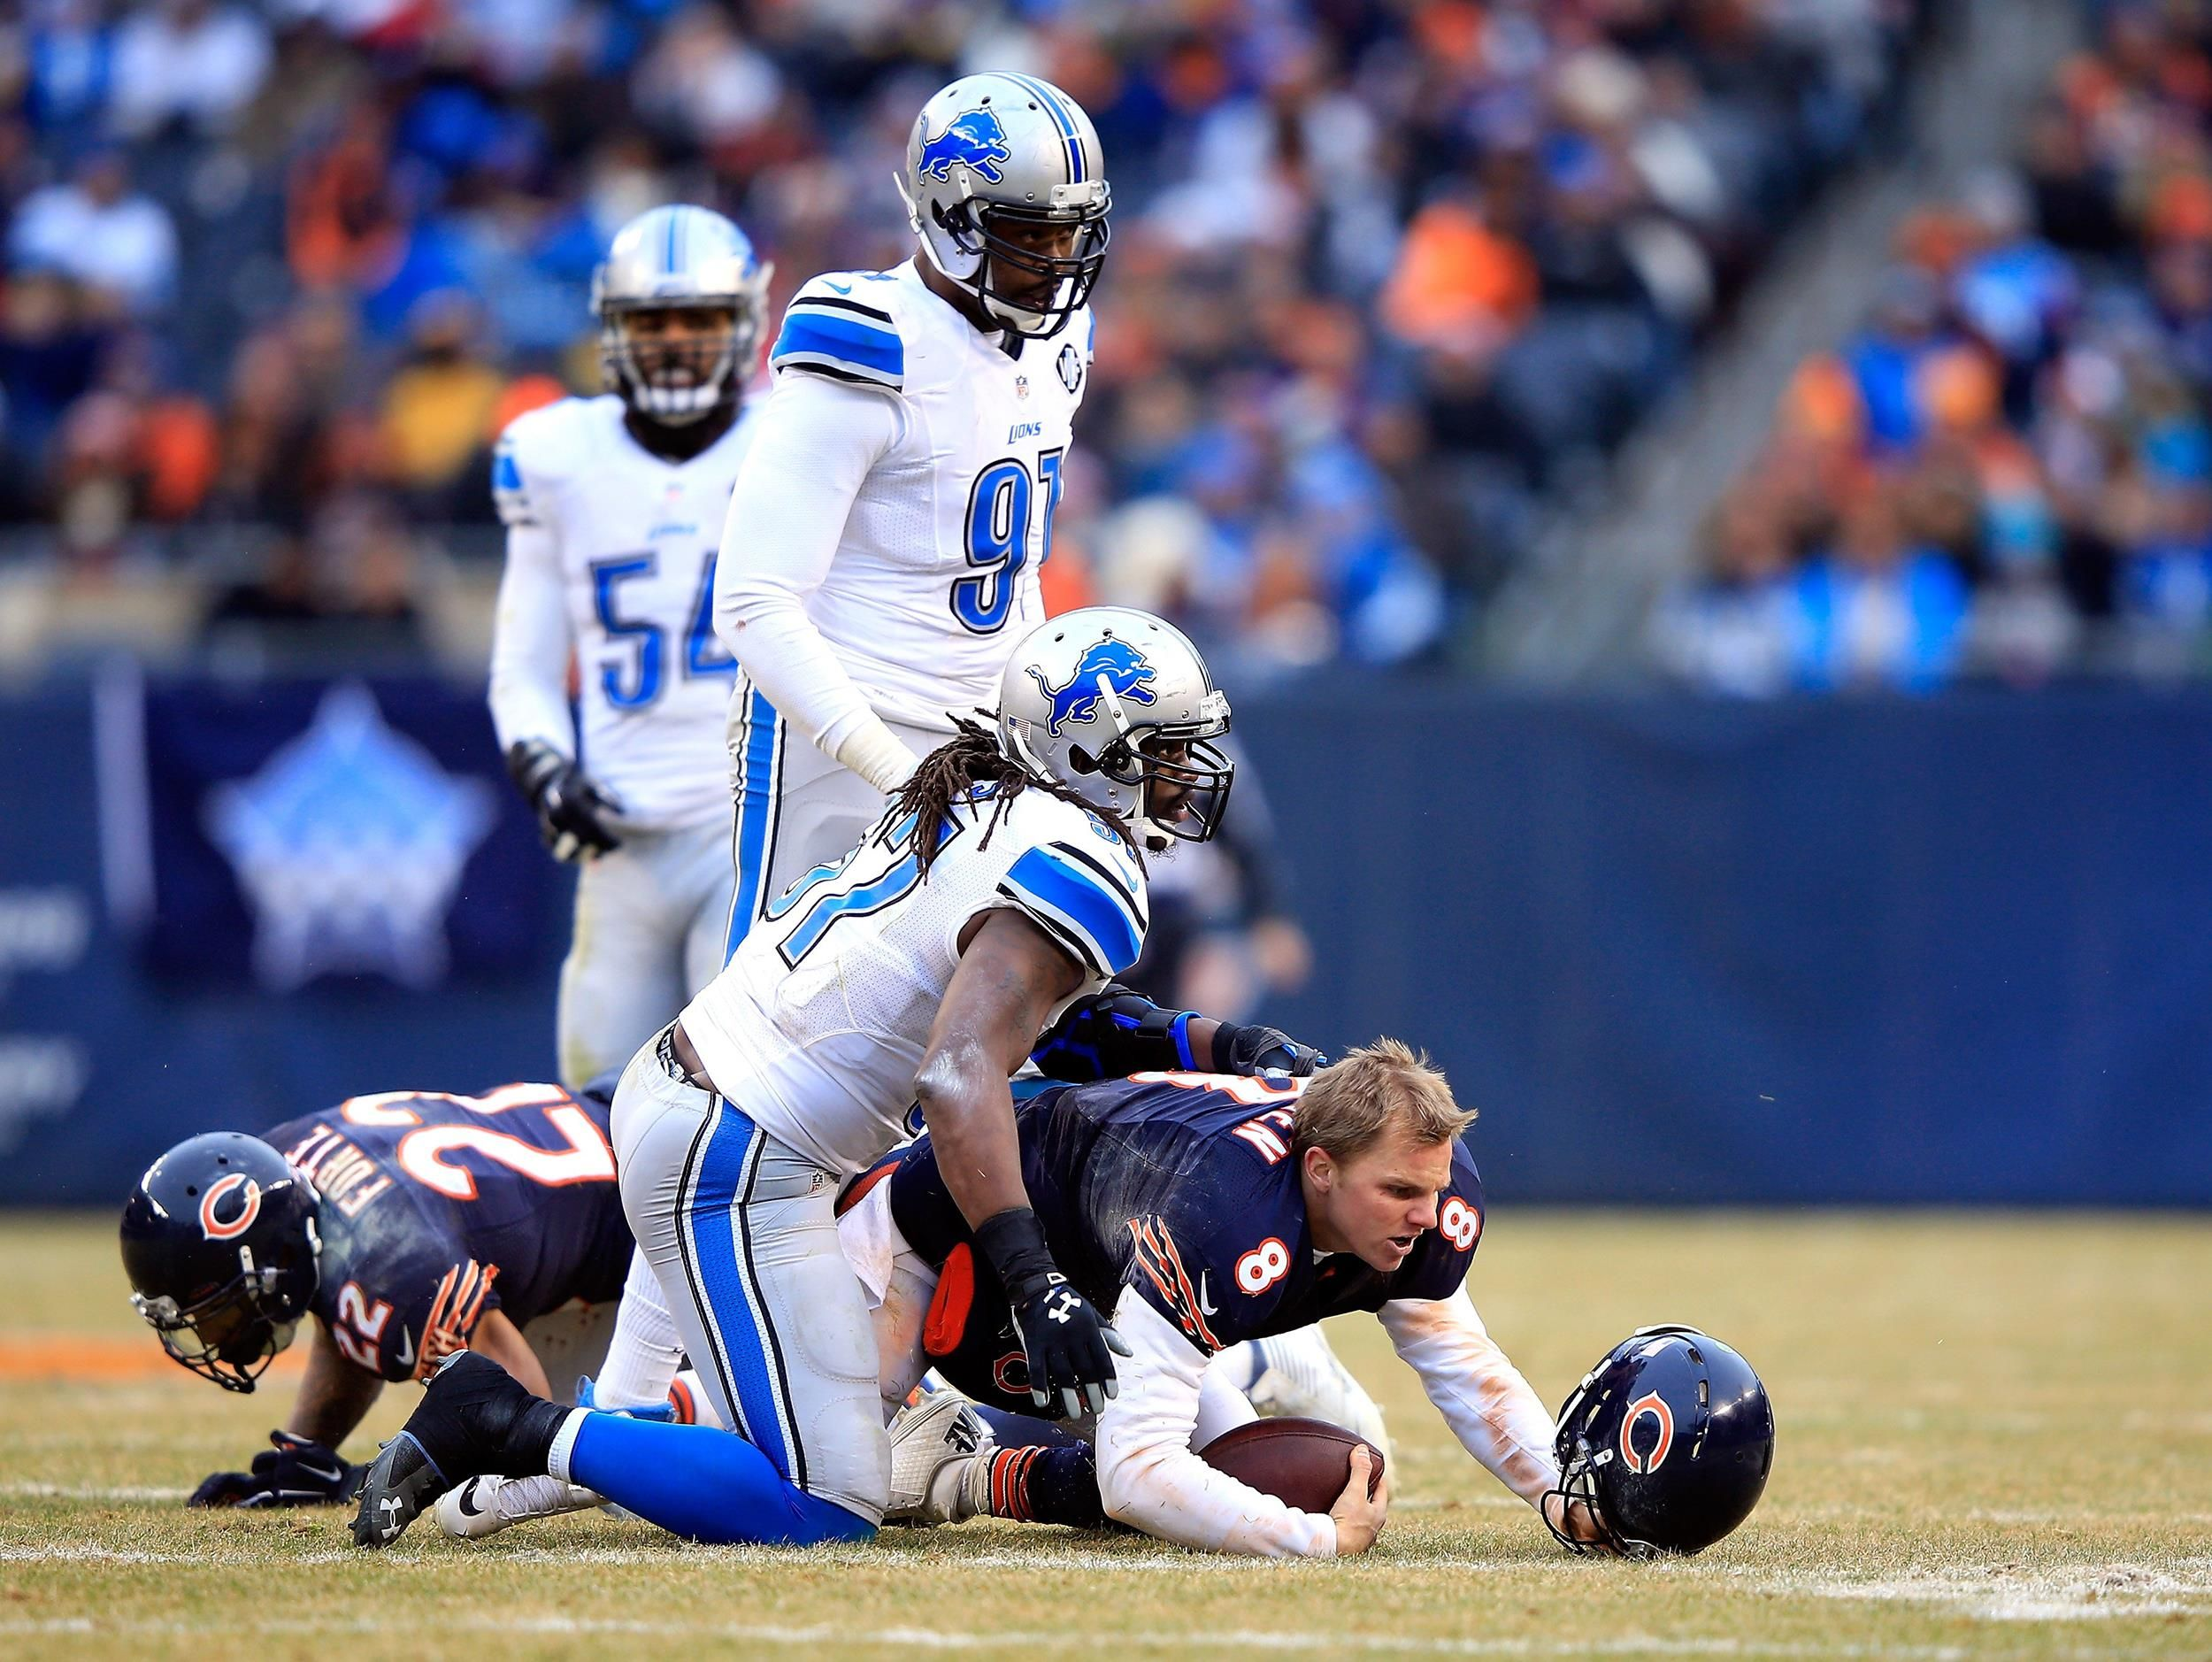 Injury to chicago bears qb offers new lesson in